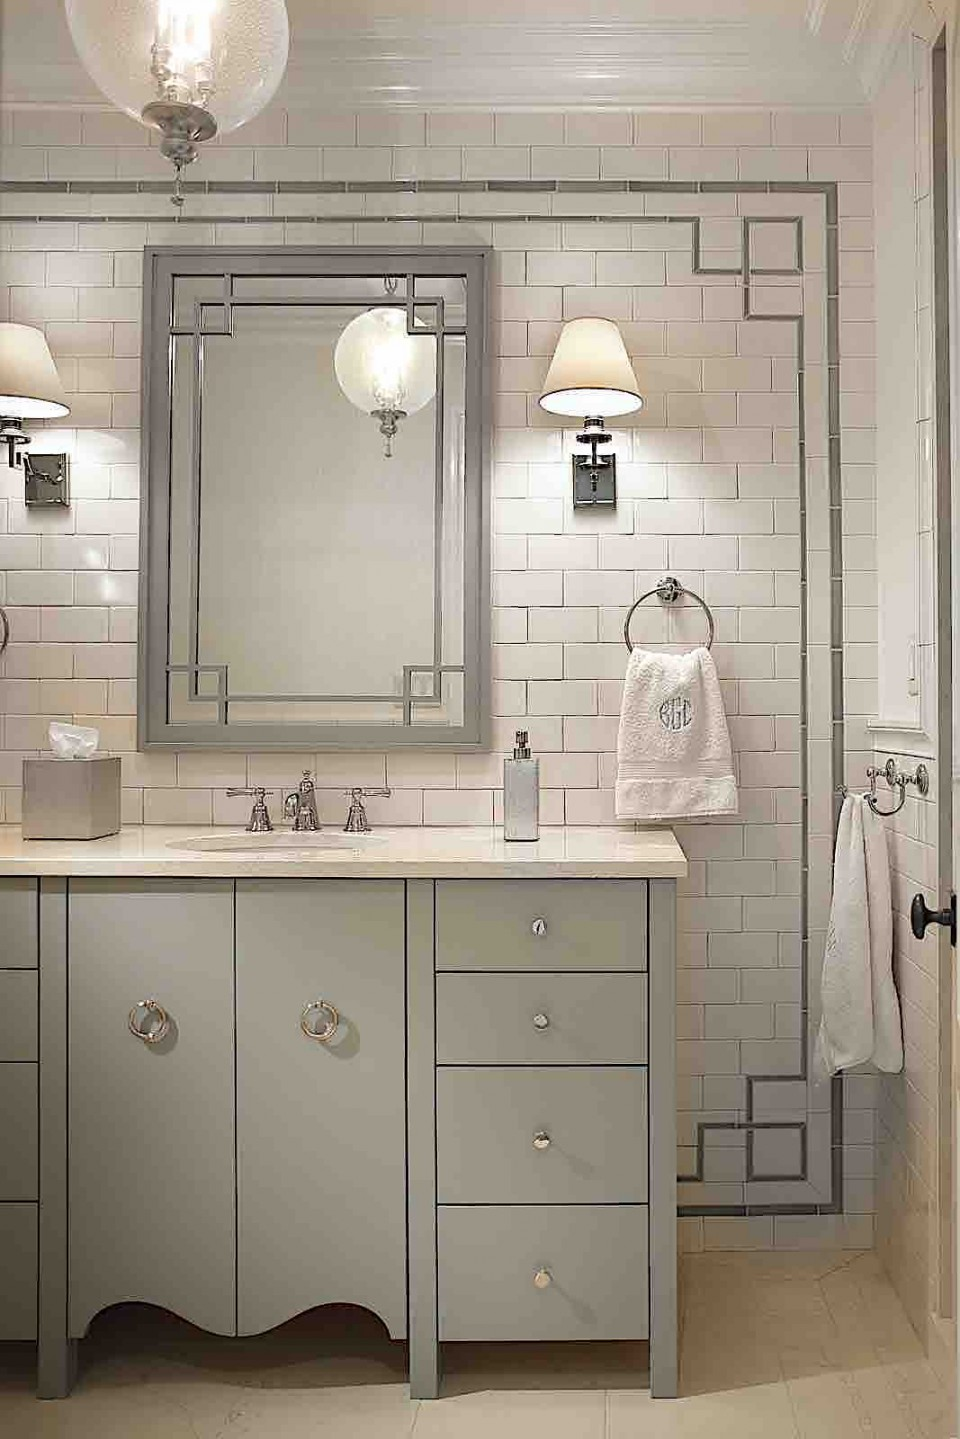 Bathroom Tile Design Inspiration